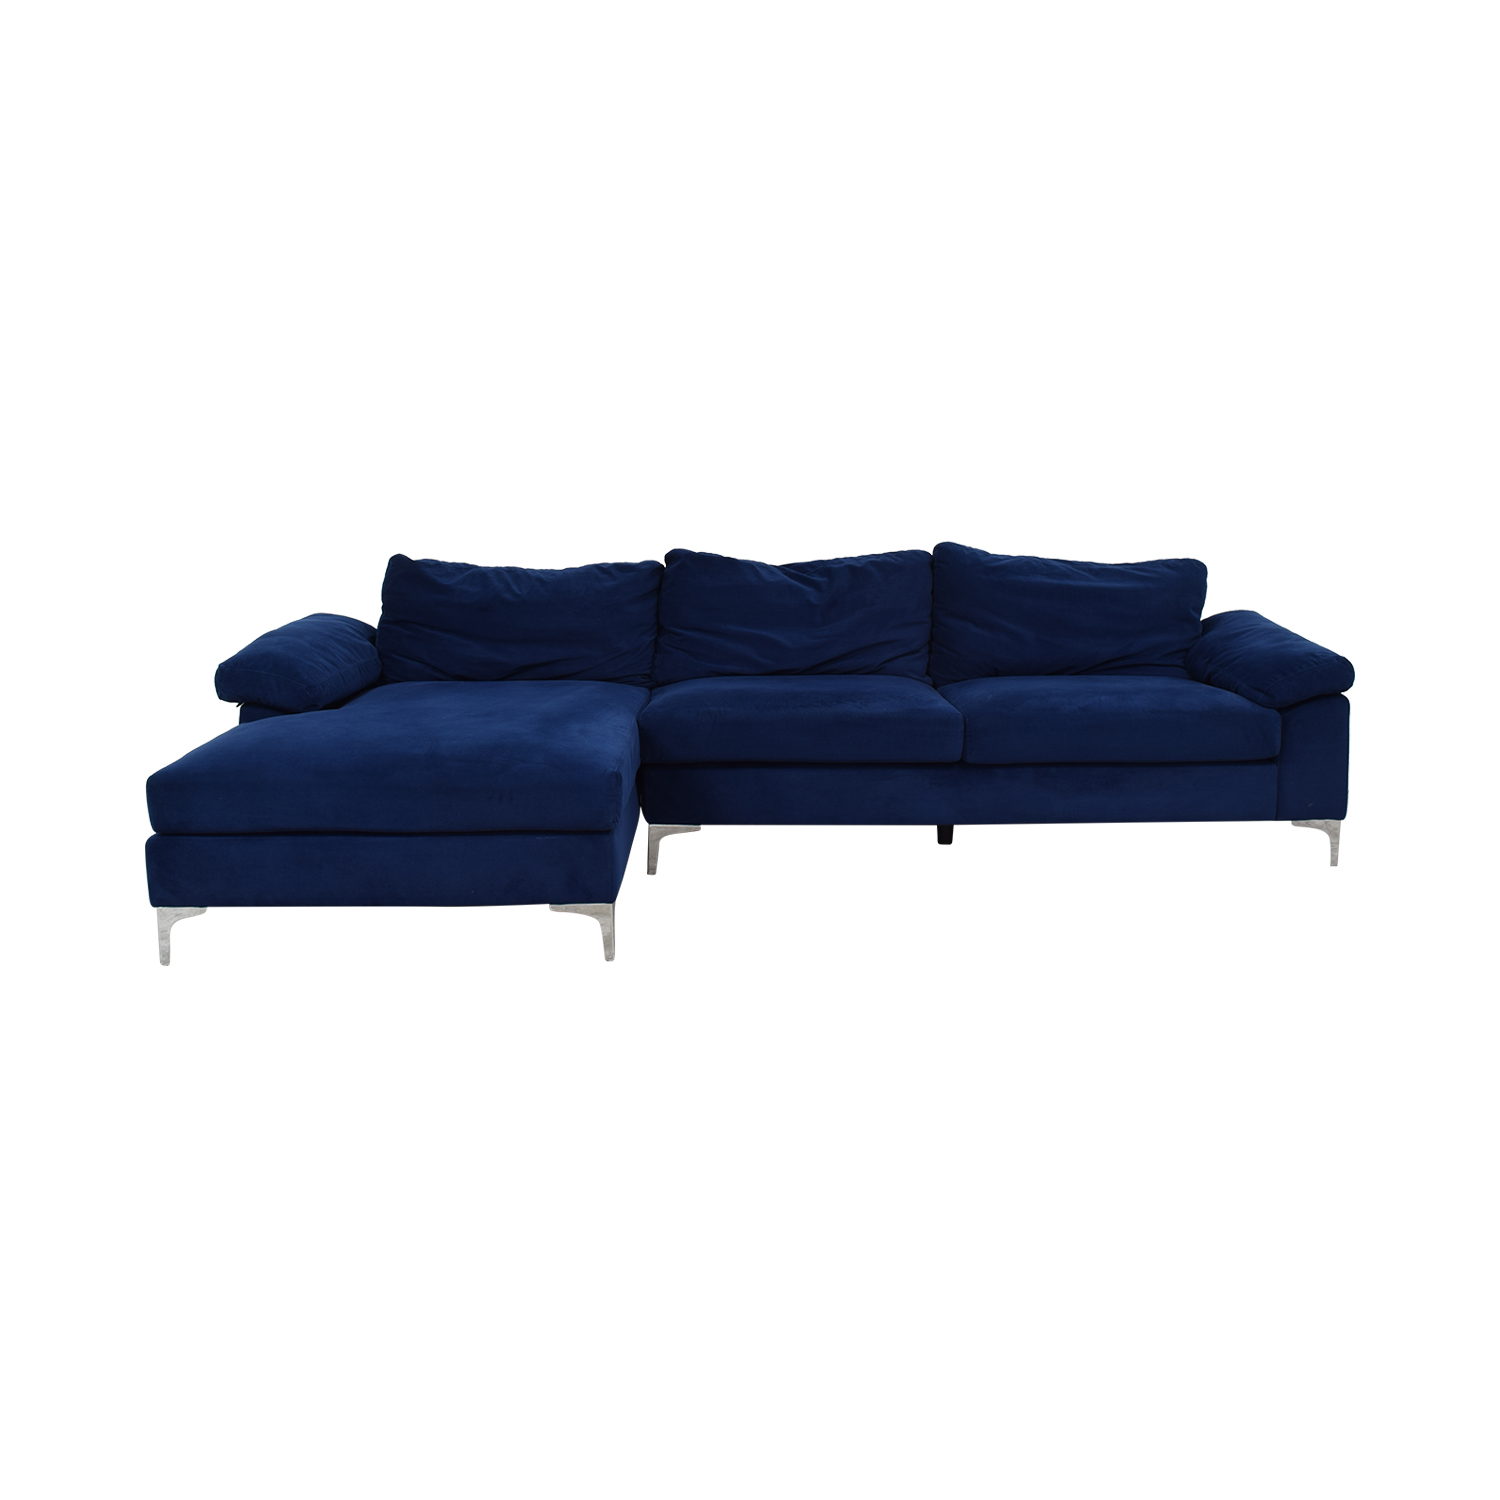 Blue Chaise Sectional with Chrome Legs for sale